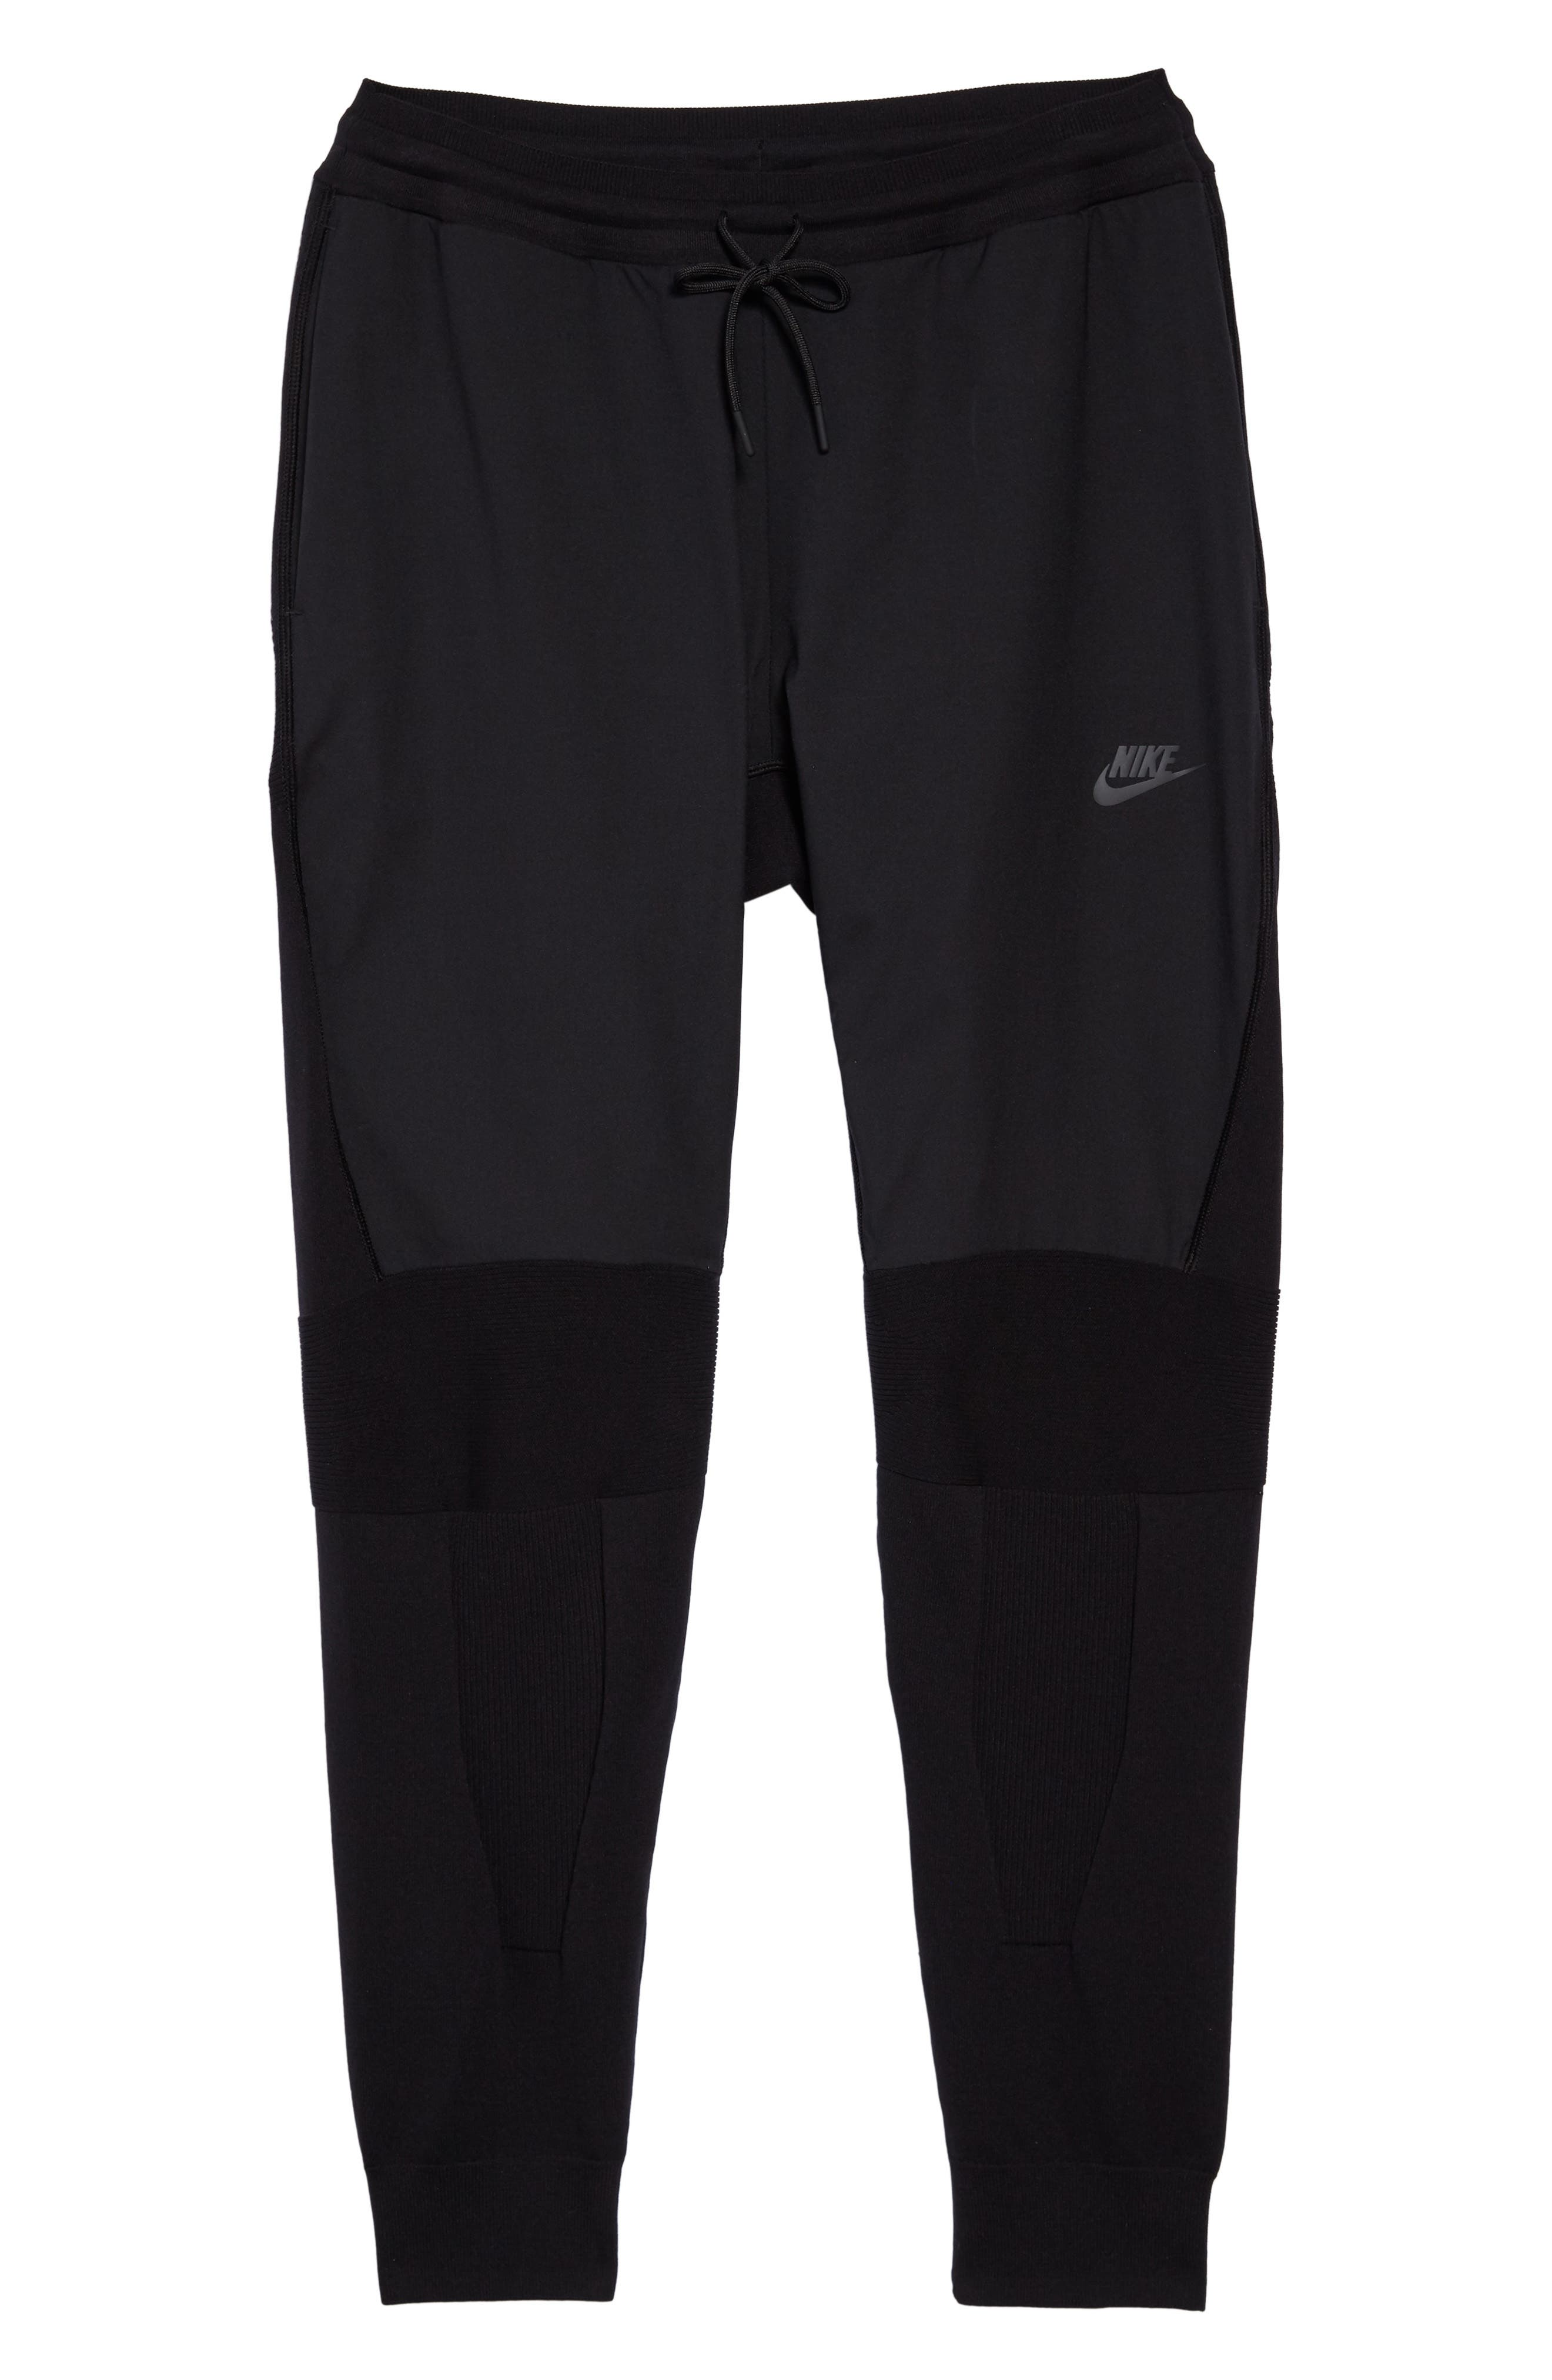 NSW Tech Knit Jogger Pants,                             Alternate thumbnail 6, color,                             010